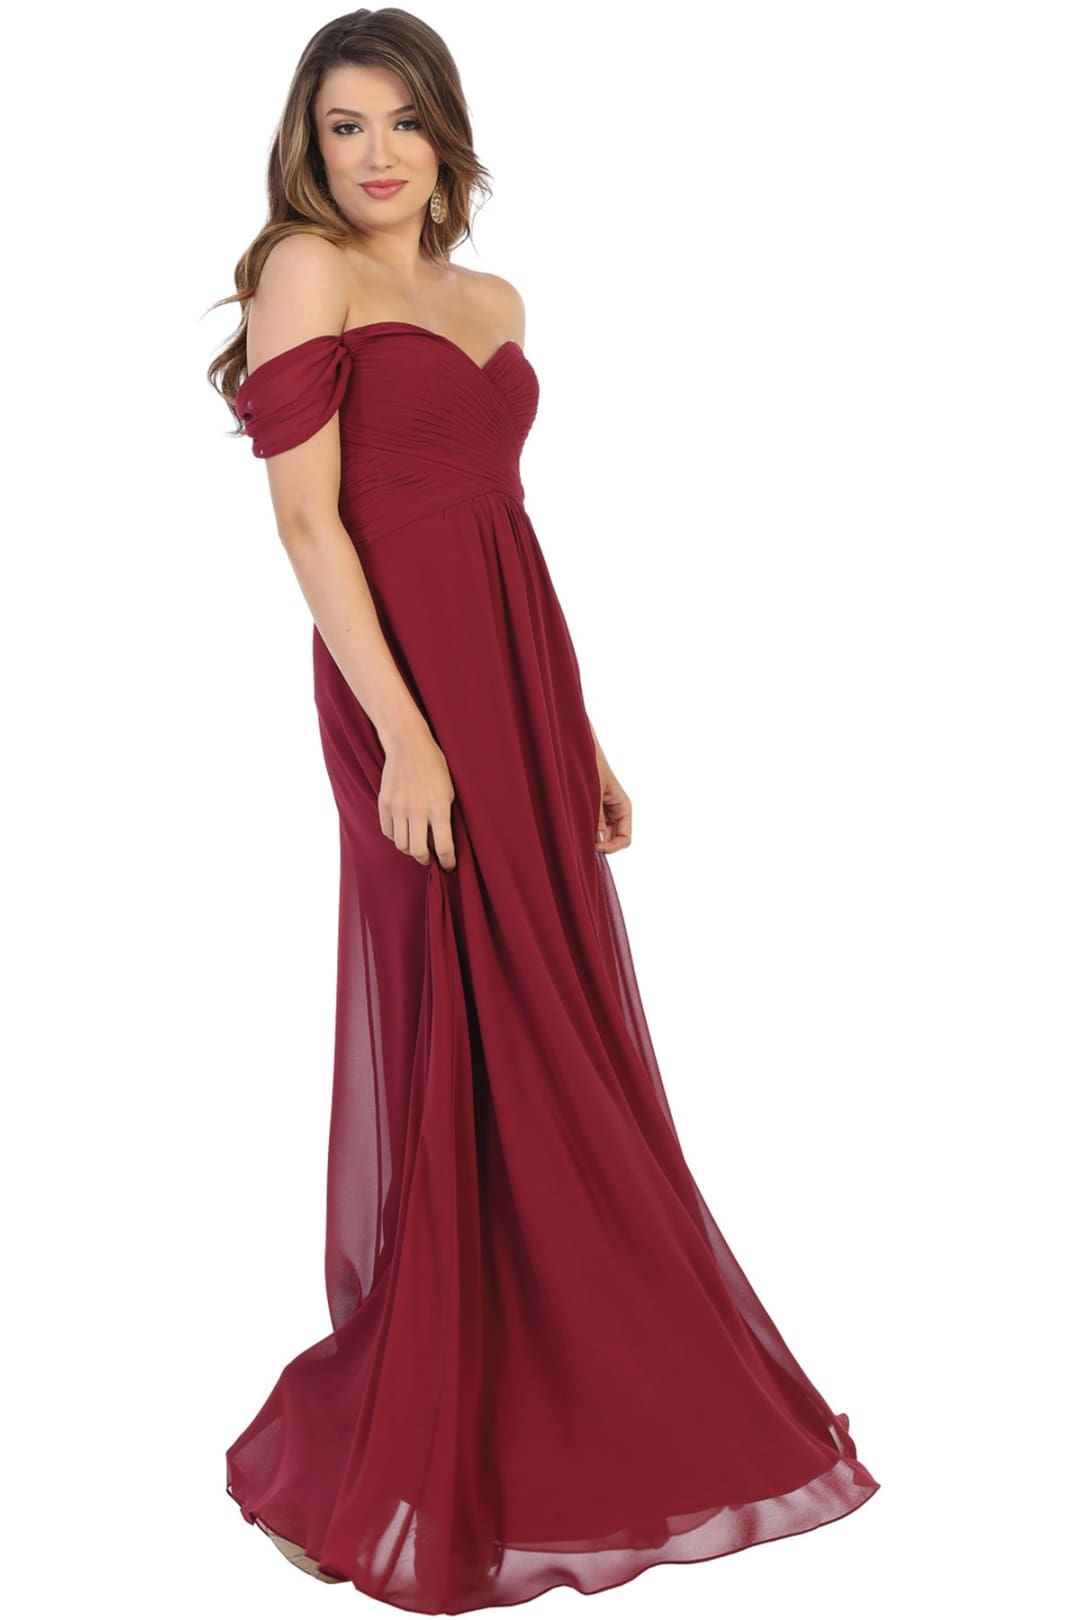 Off Shoulder Homecoming Gown - Burgundy / 4